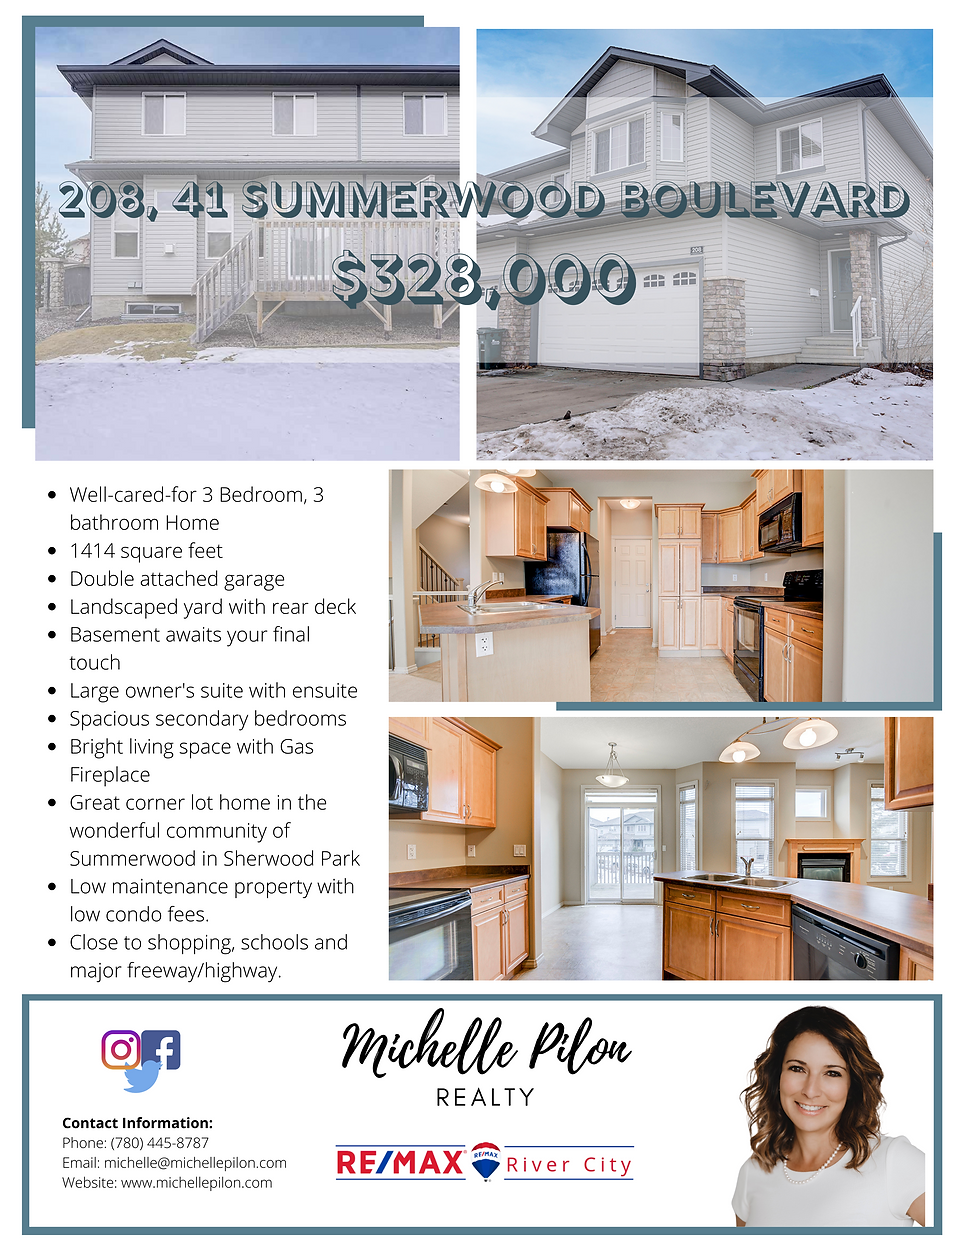 208, 41 Summerwood Boulevard Feature She